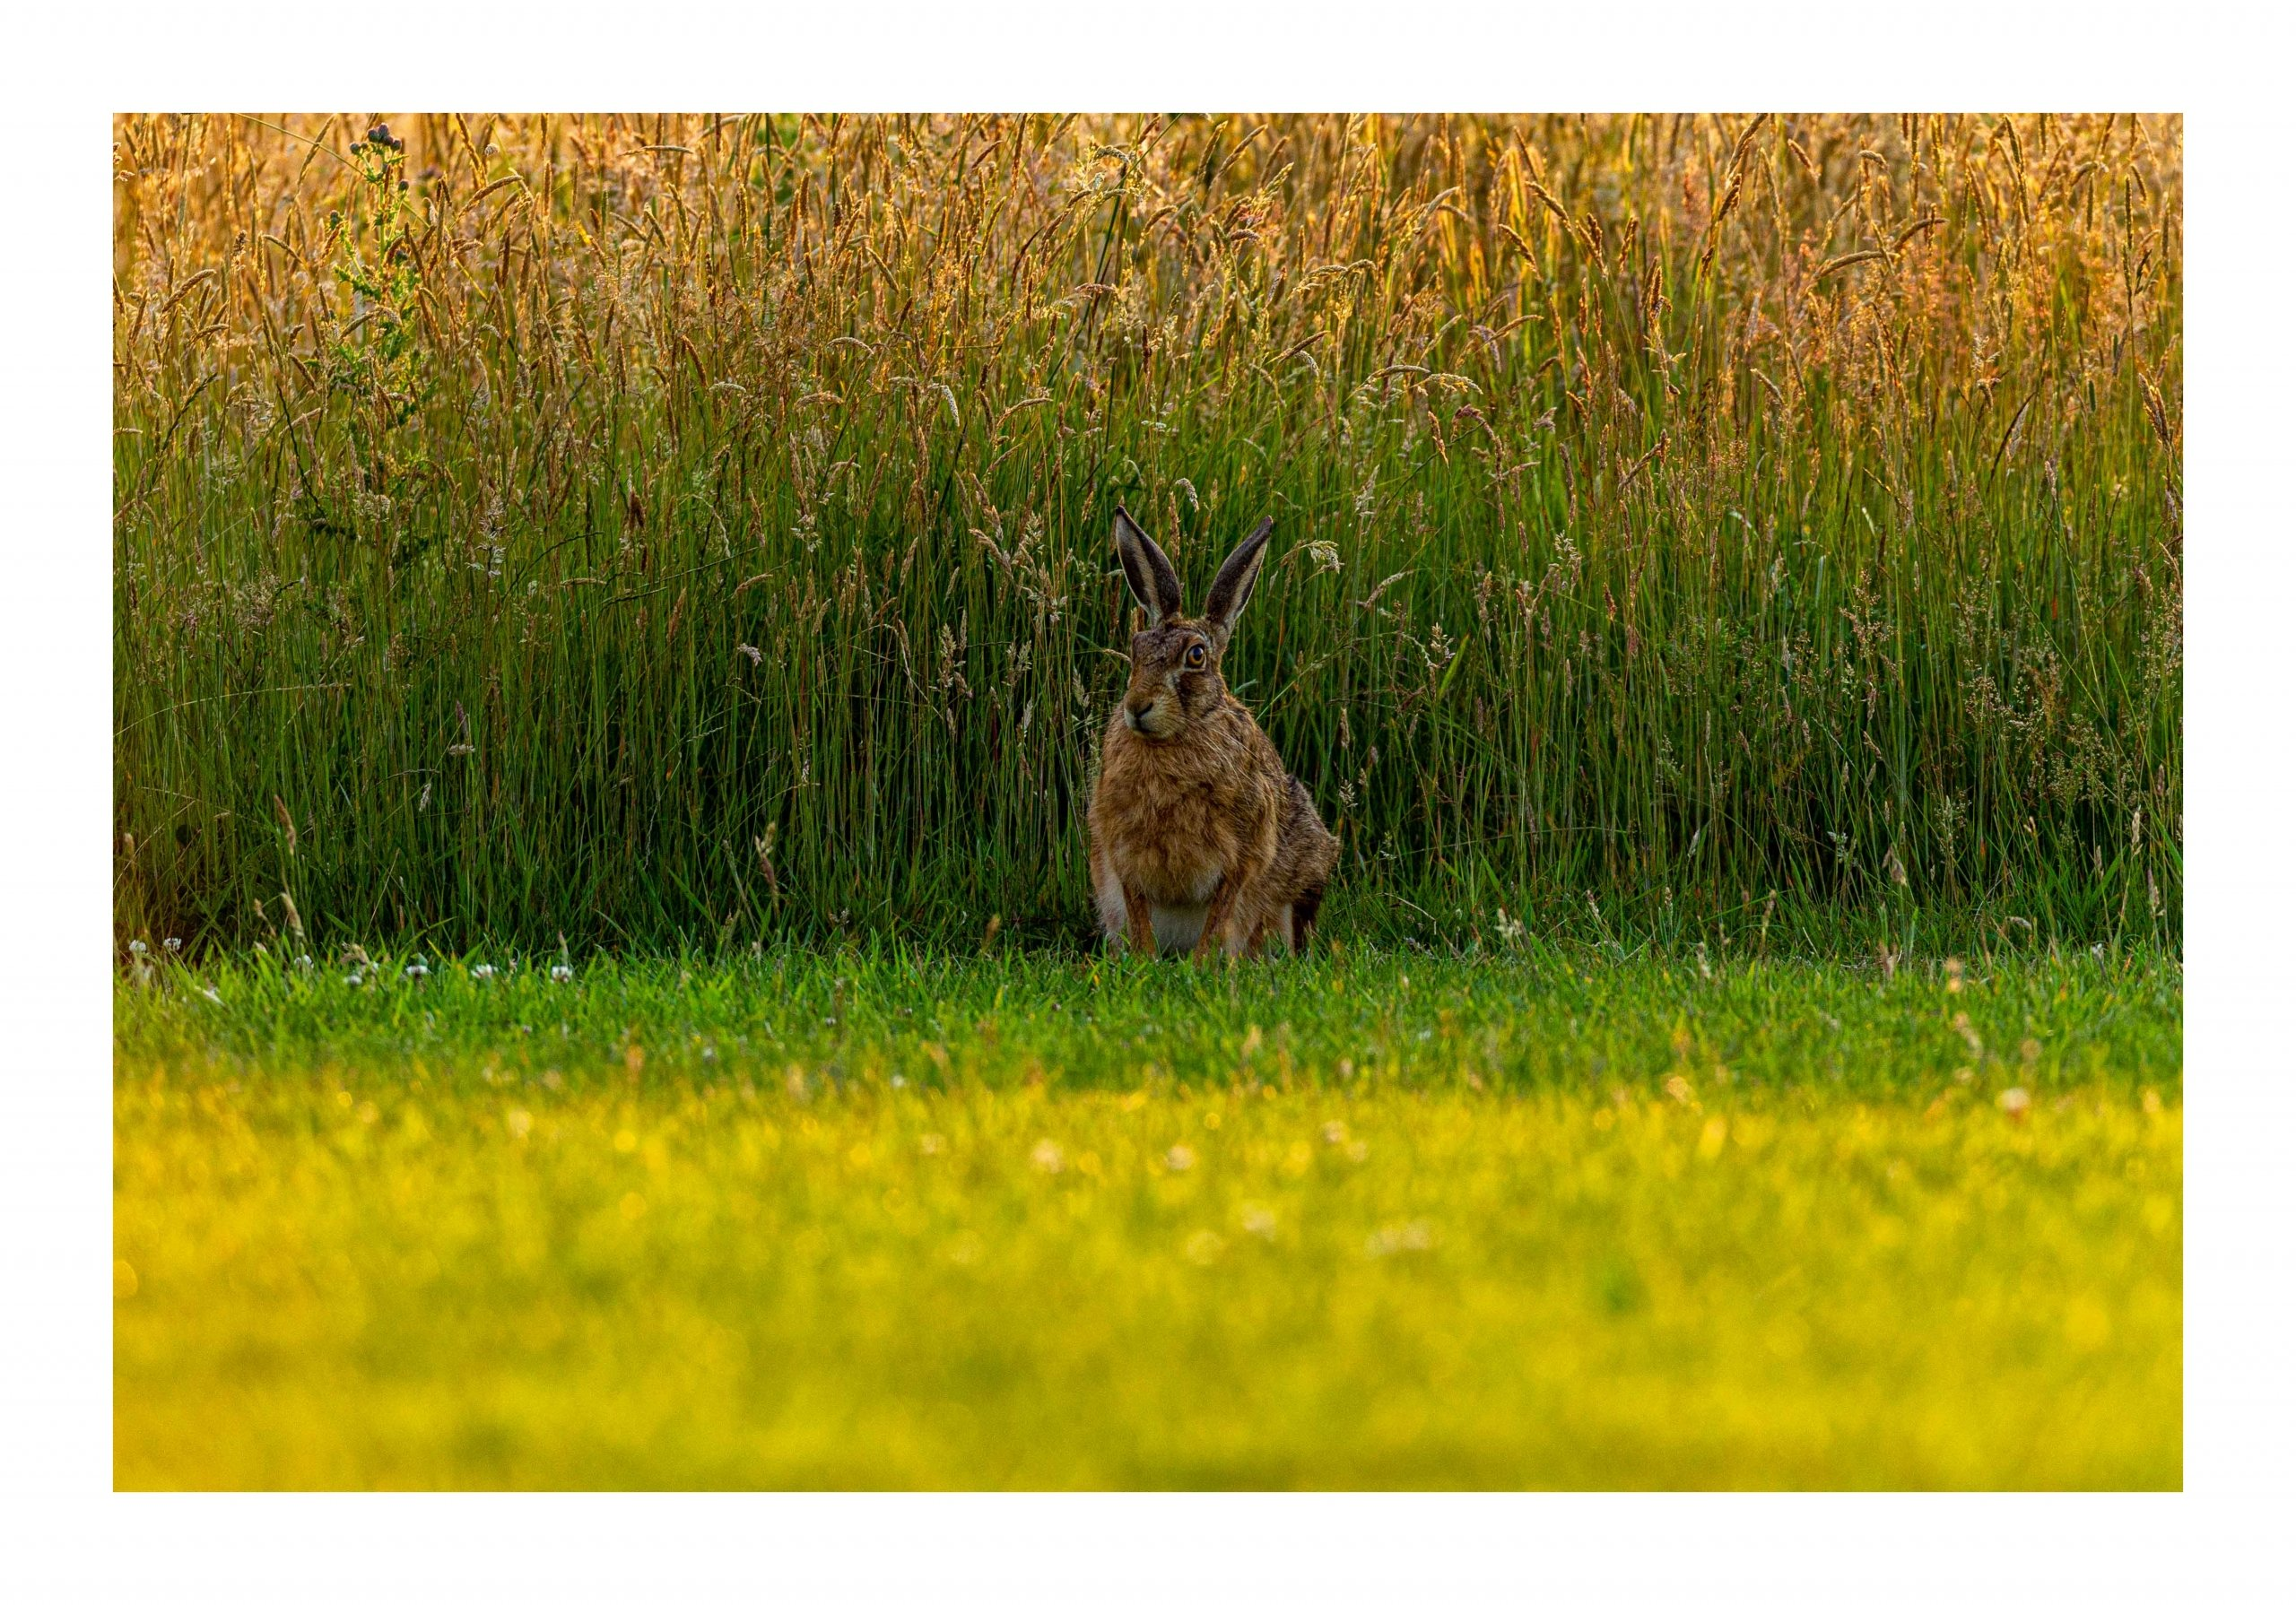 Brown Hare hiding in grass